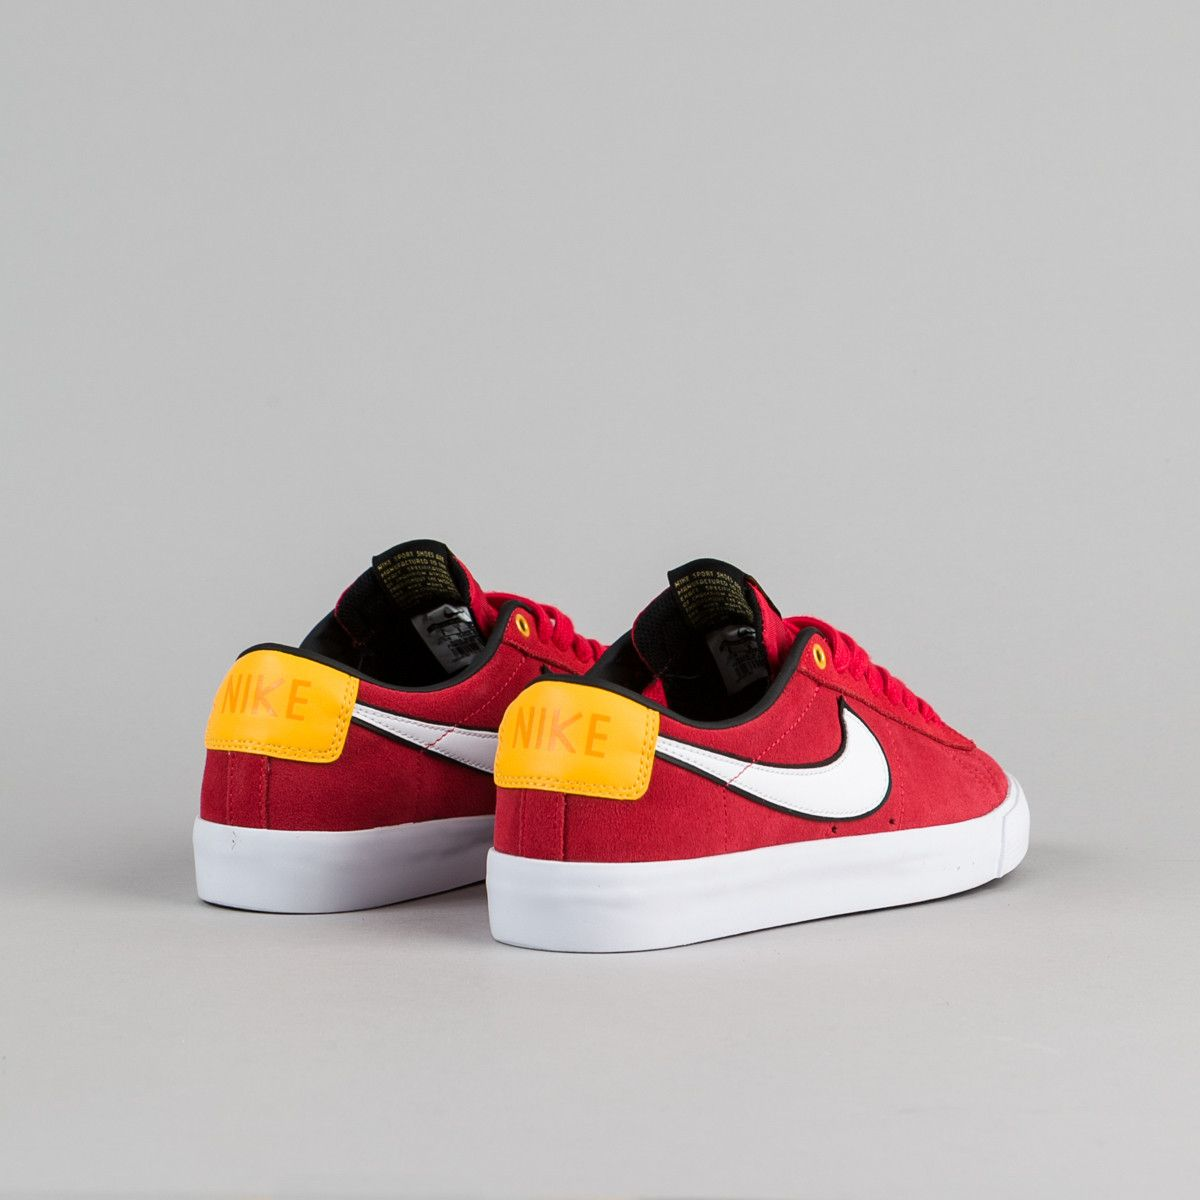 sale retailer d4510 33215 nike sb blazer low gt university red